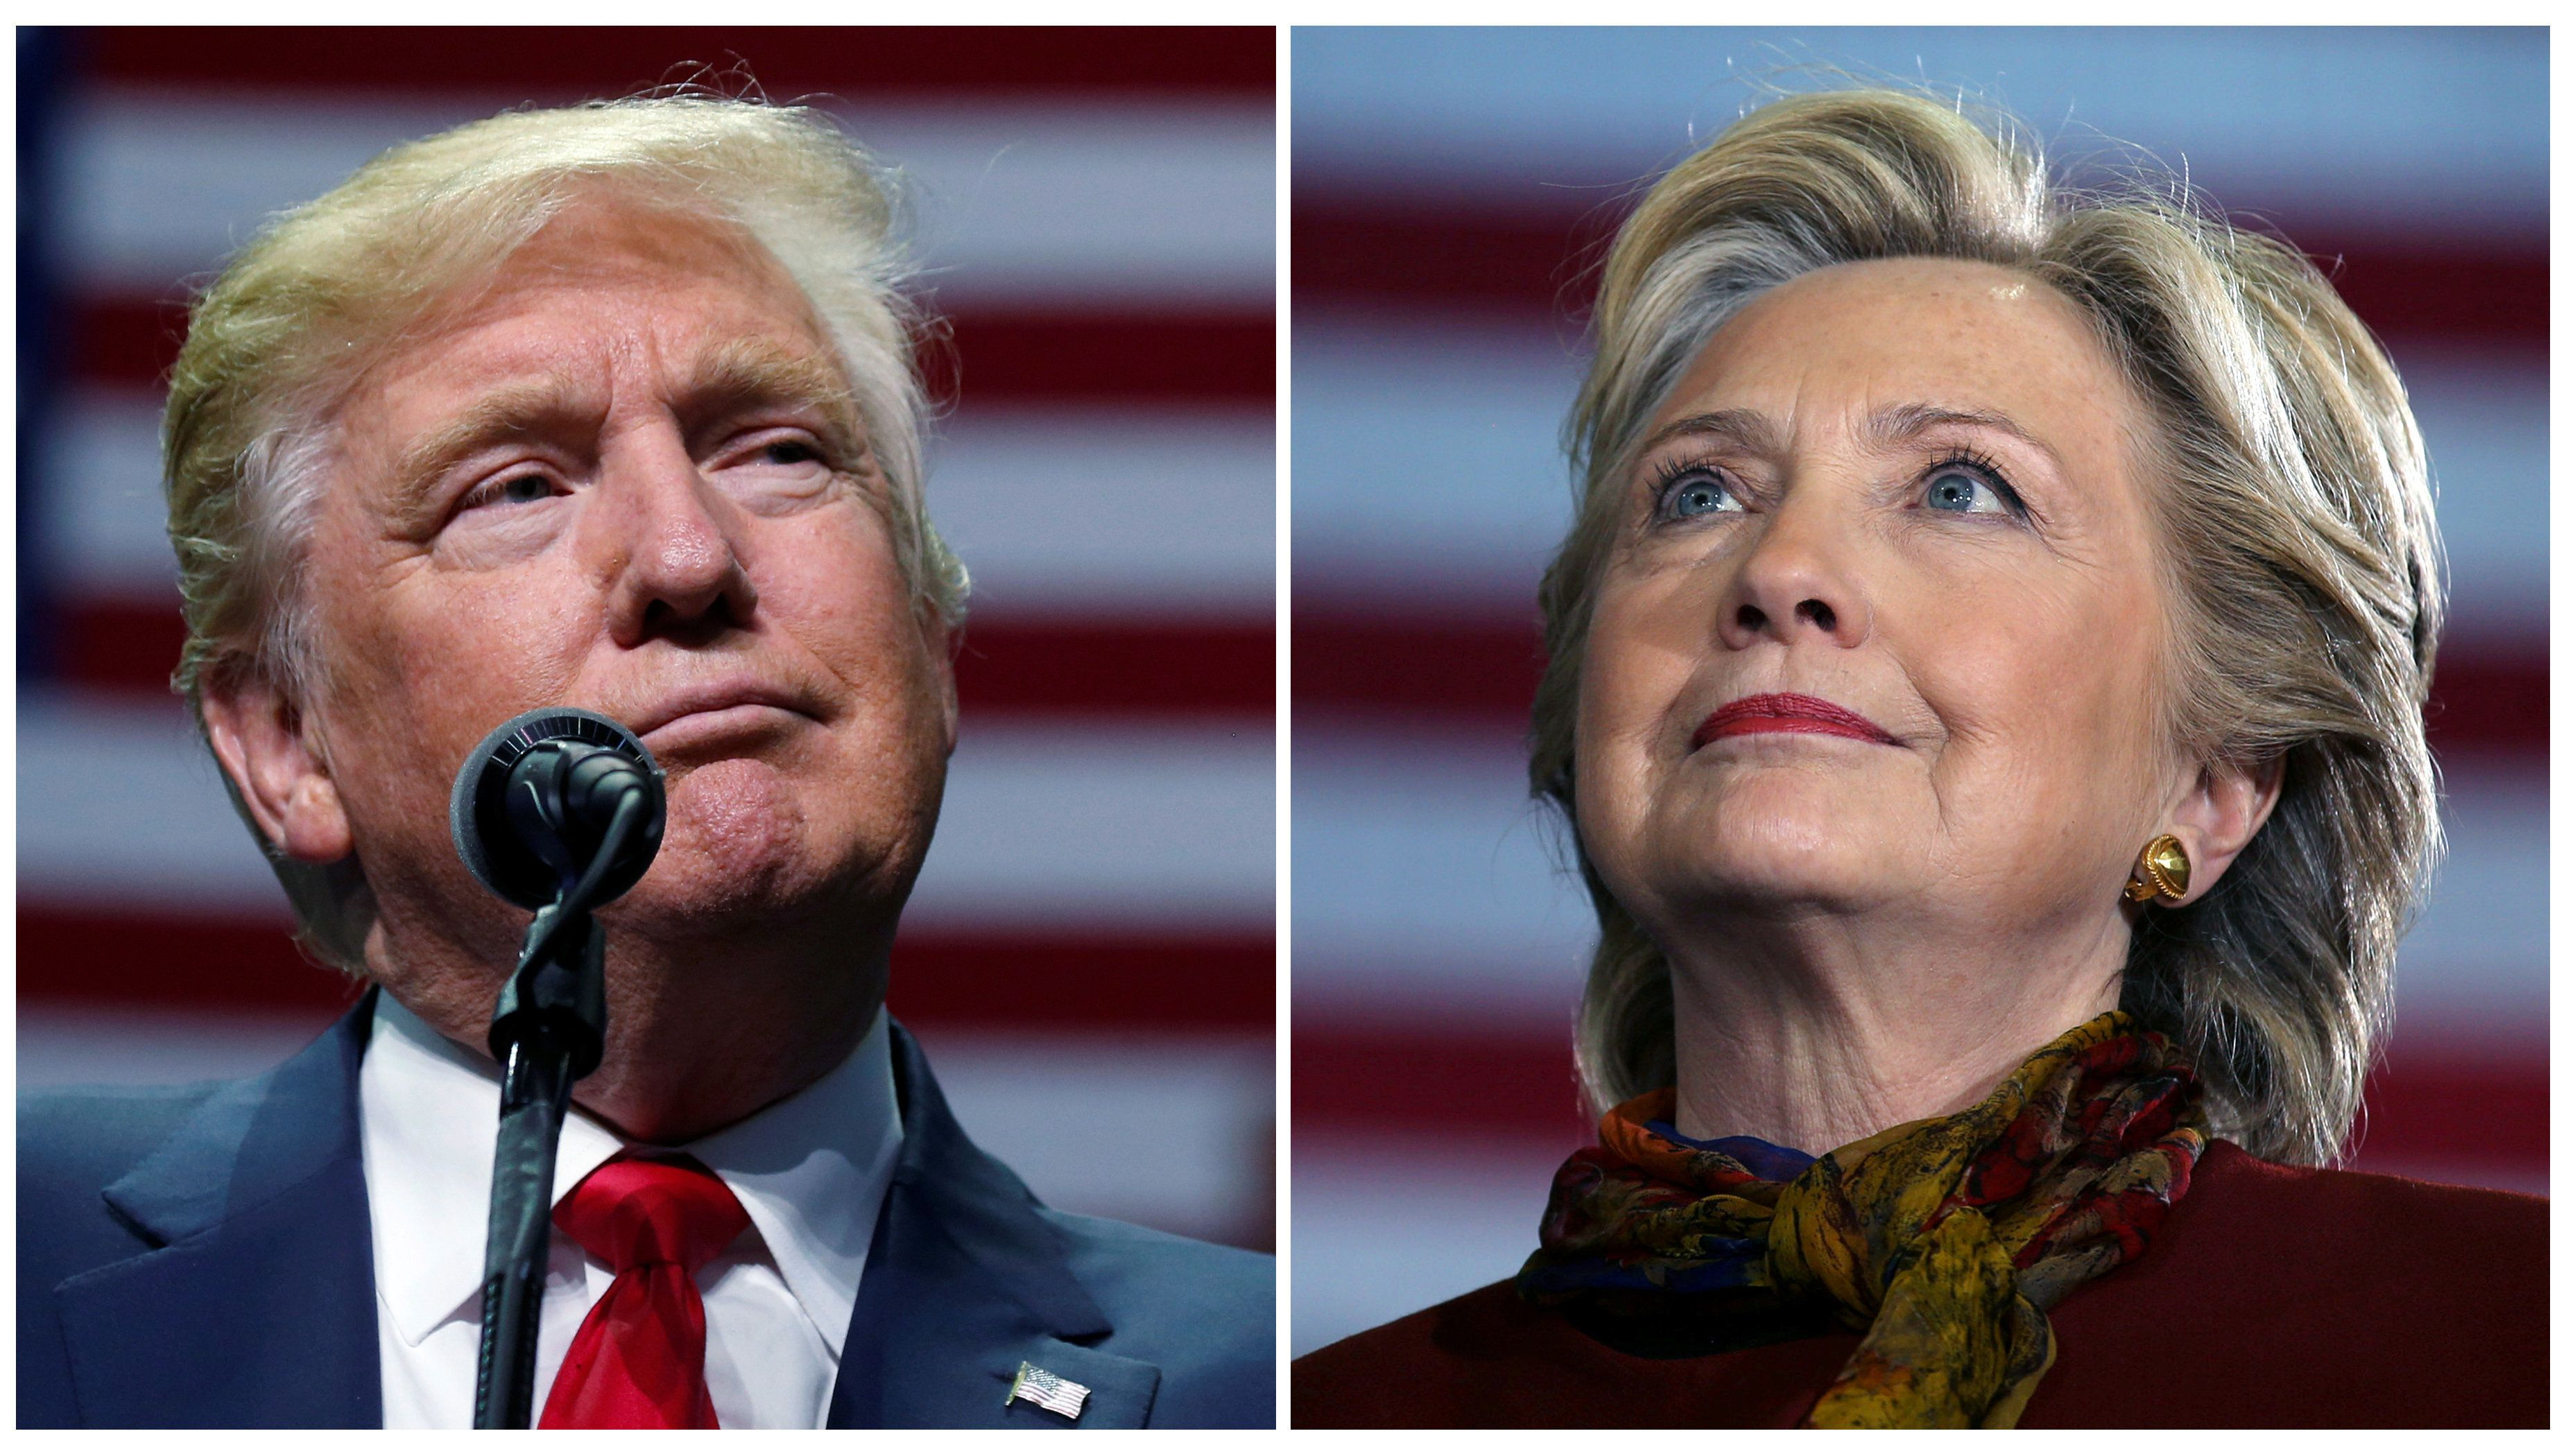 U.S. presidential candidates Donald Trump and Hillary Clinton attend campaign events in Hershey, Pennsylvania, November 4, 20